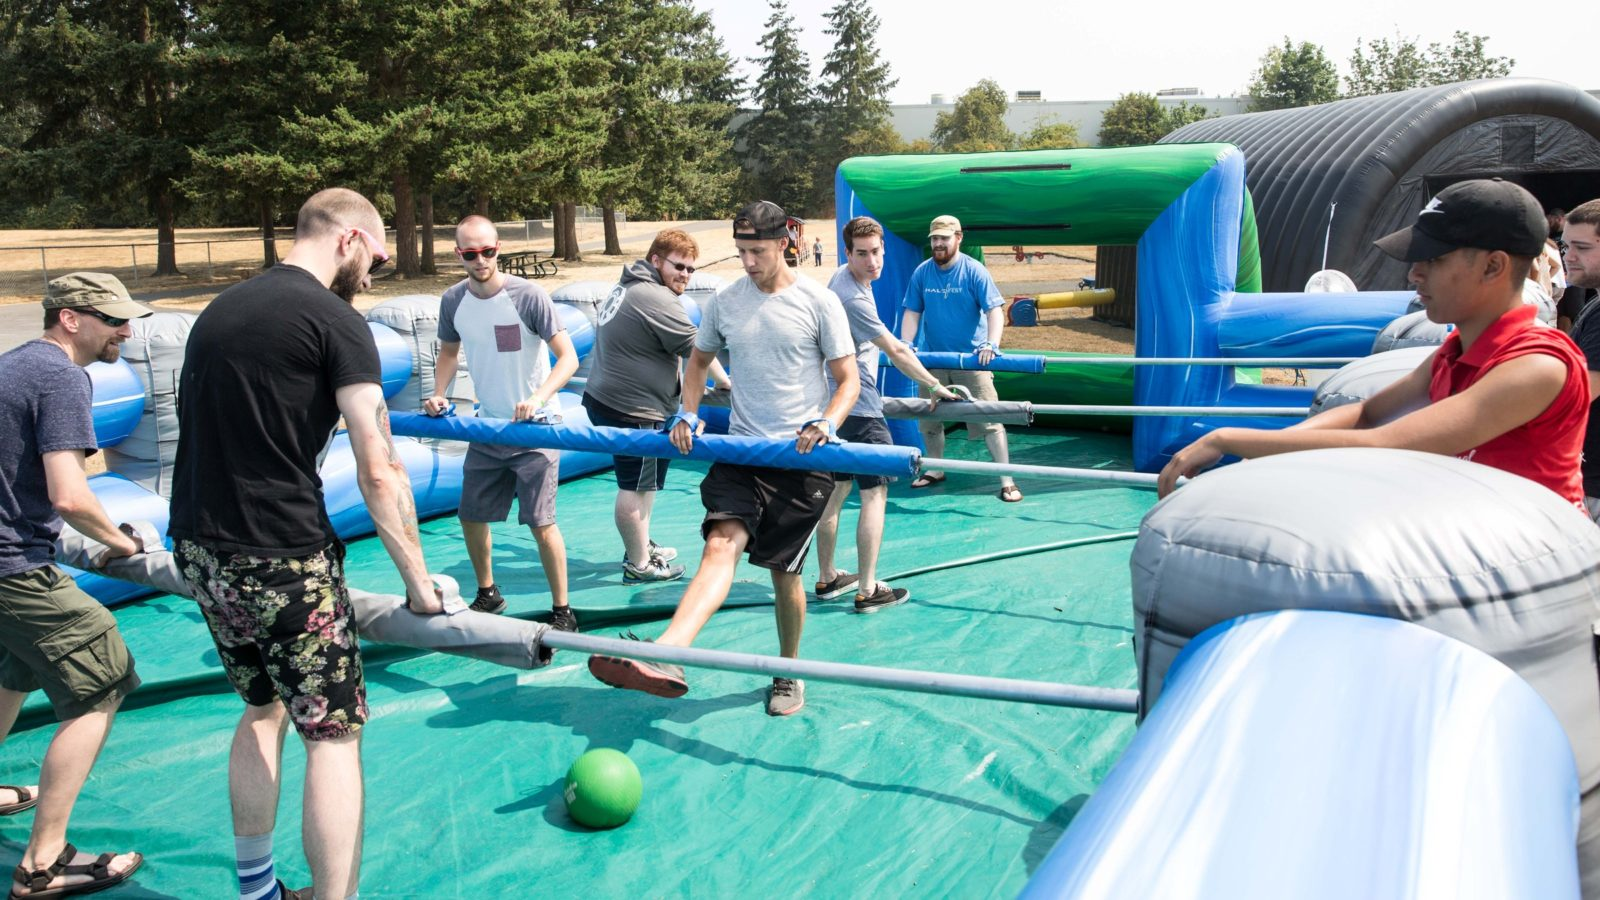 Human Foosball Giant Game Rental National Event Pros